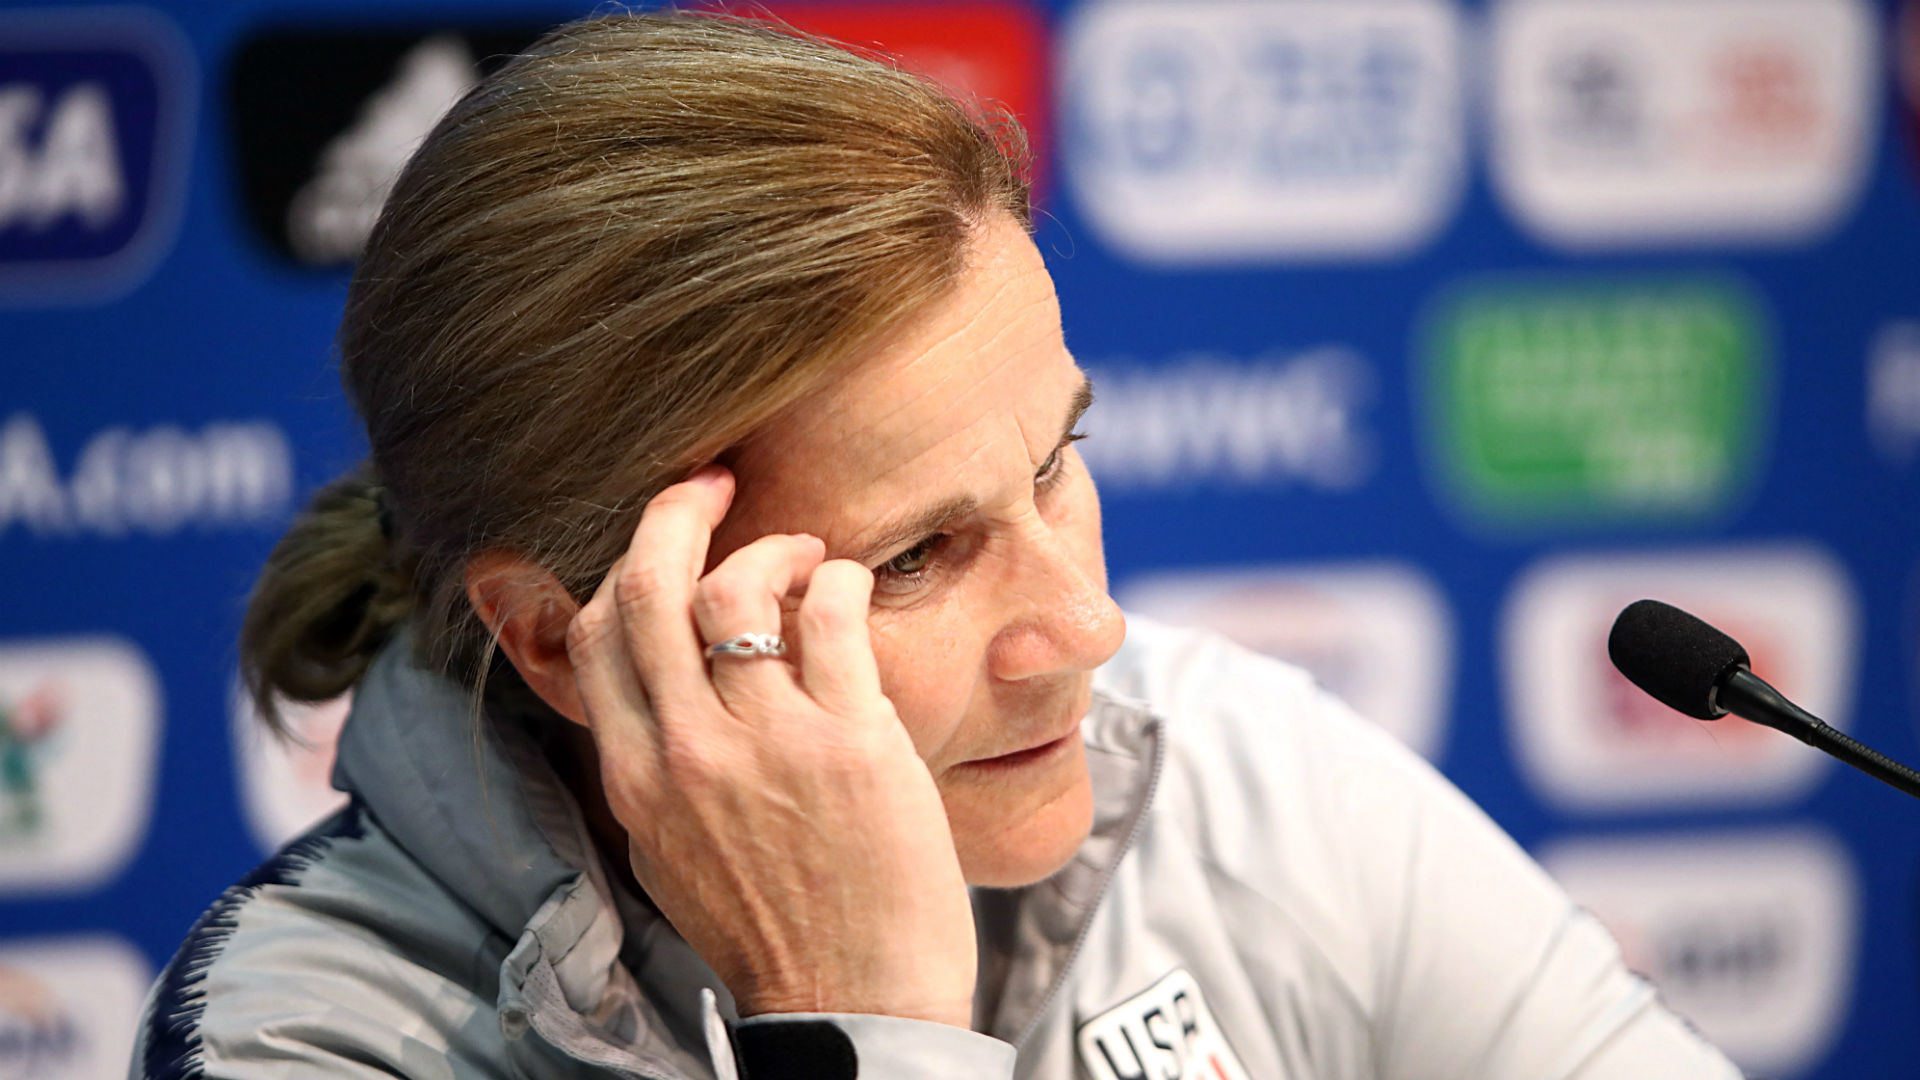 Women's World Cup 2019: USWNT coach Jill Ellis rightly dismisses talk of tanking to avoid France